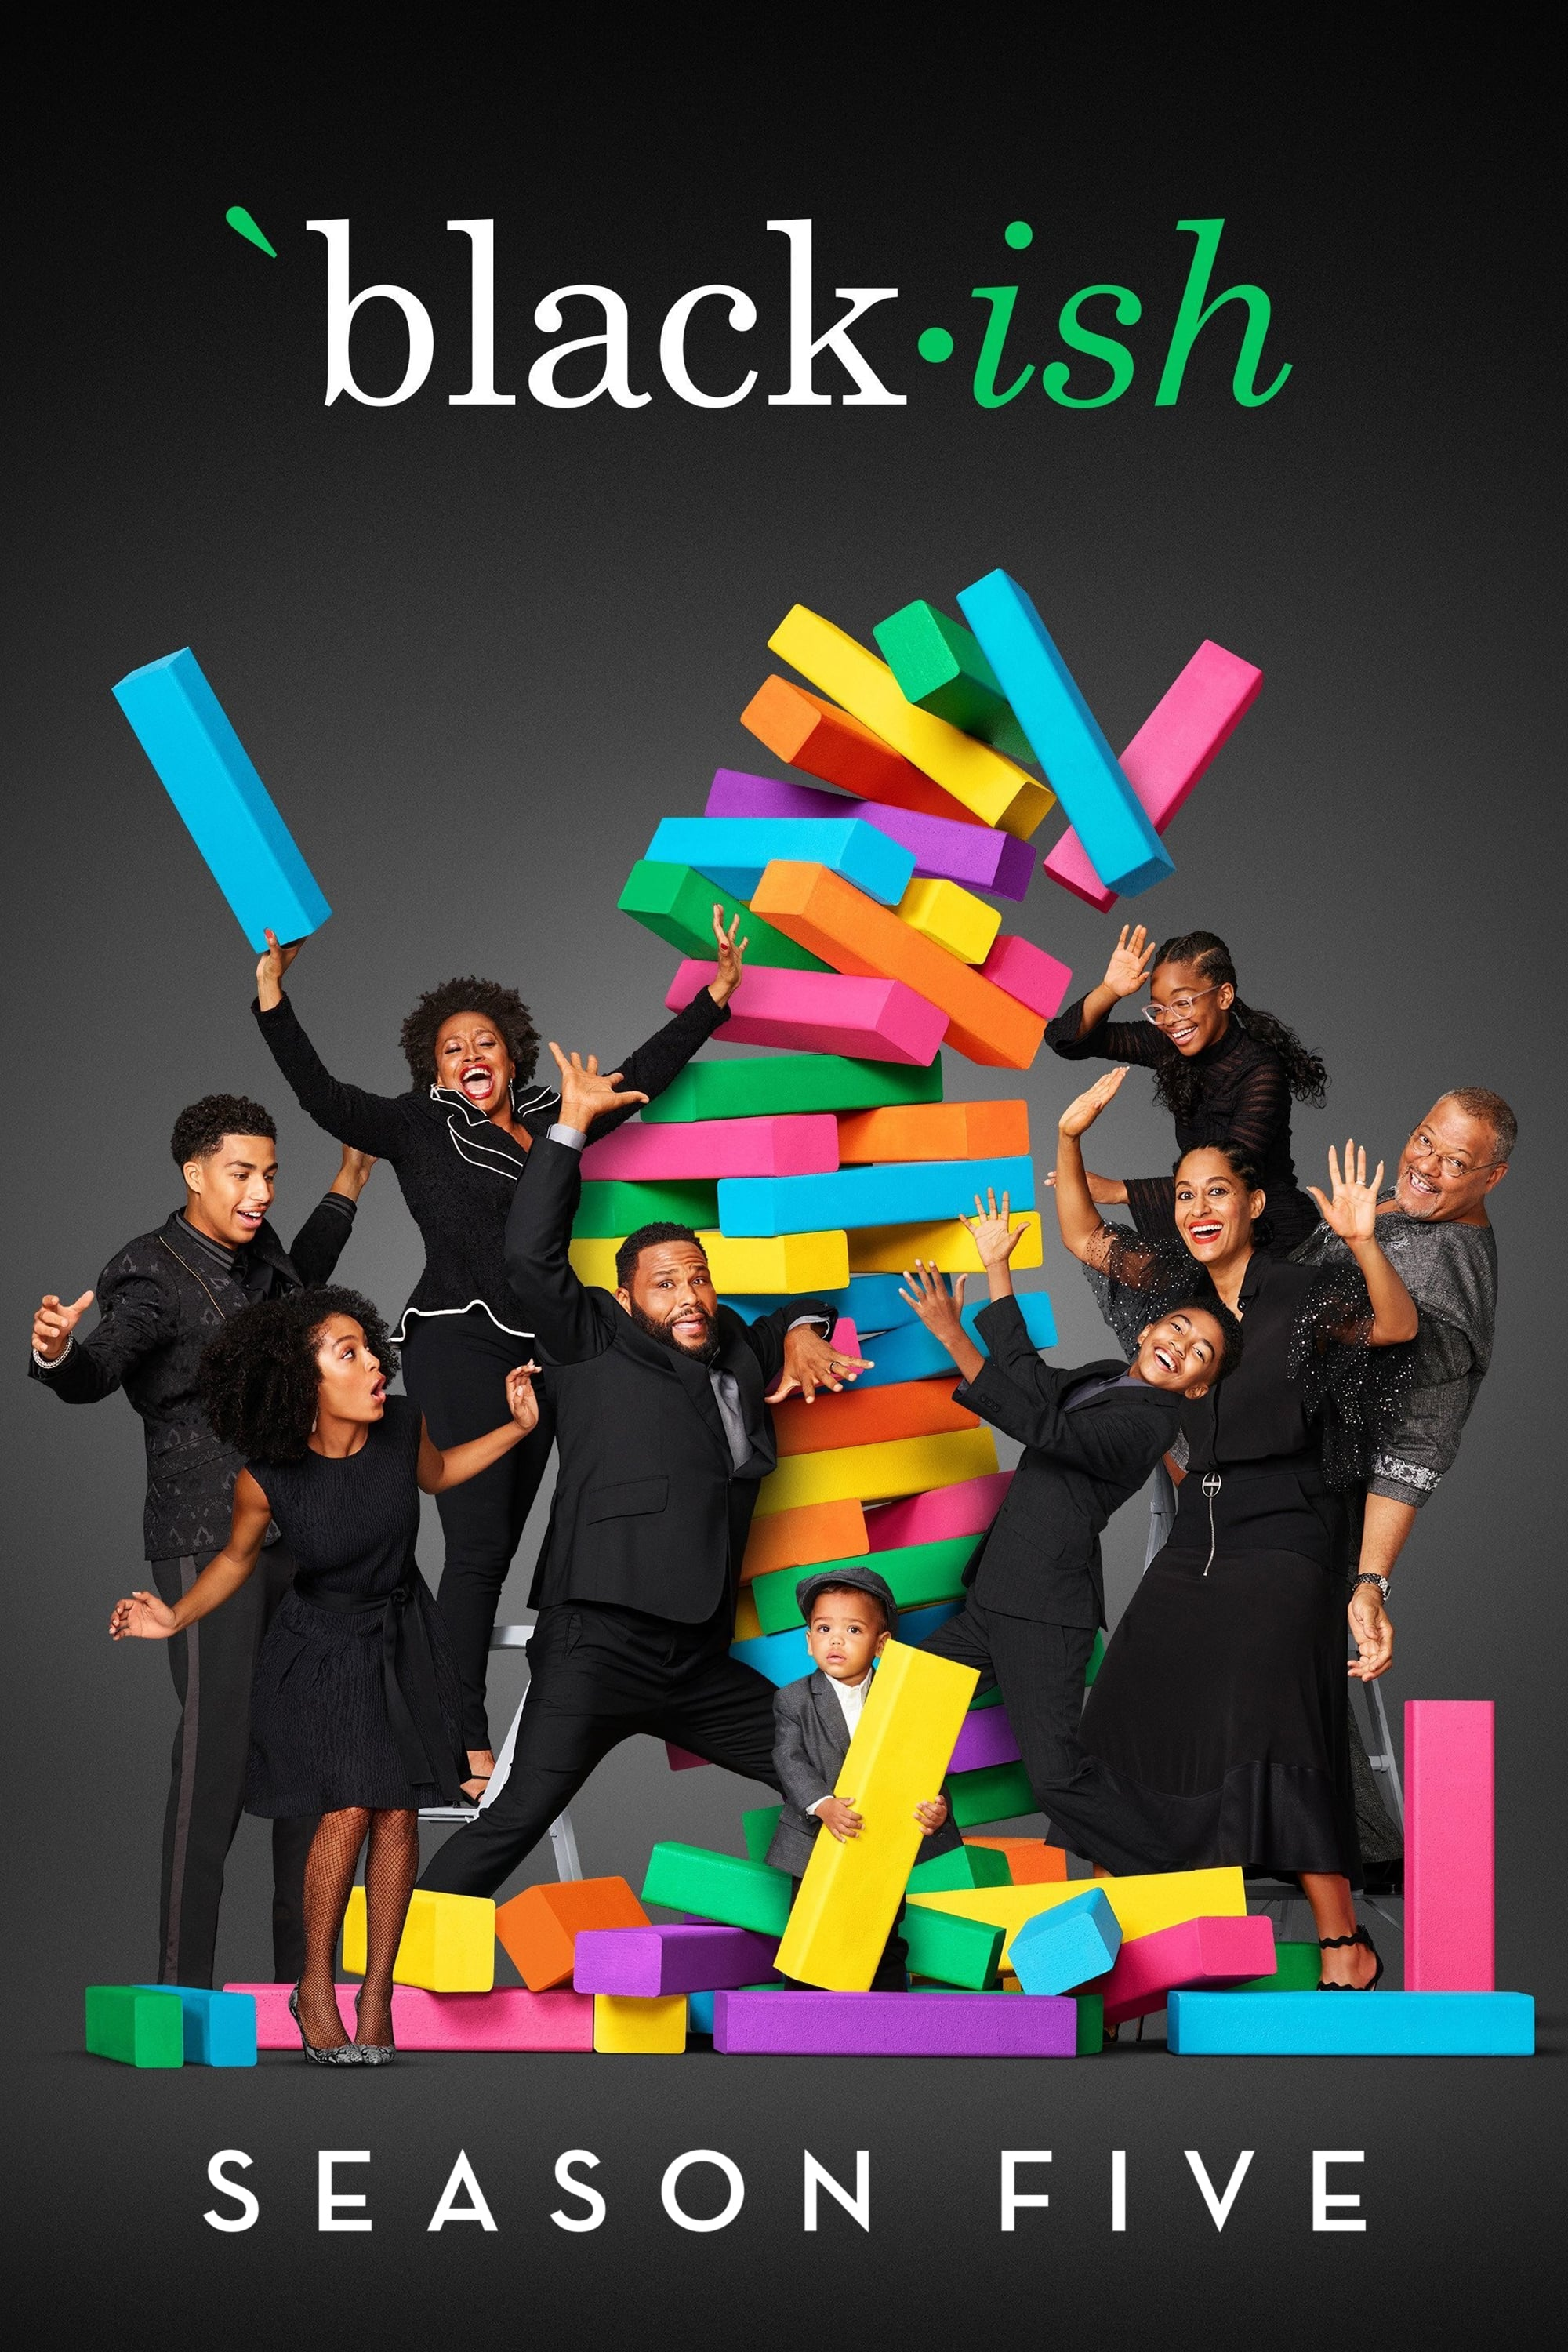 black-ish Season 5